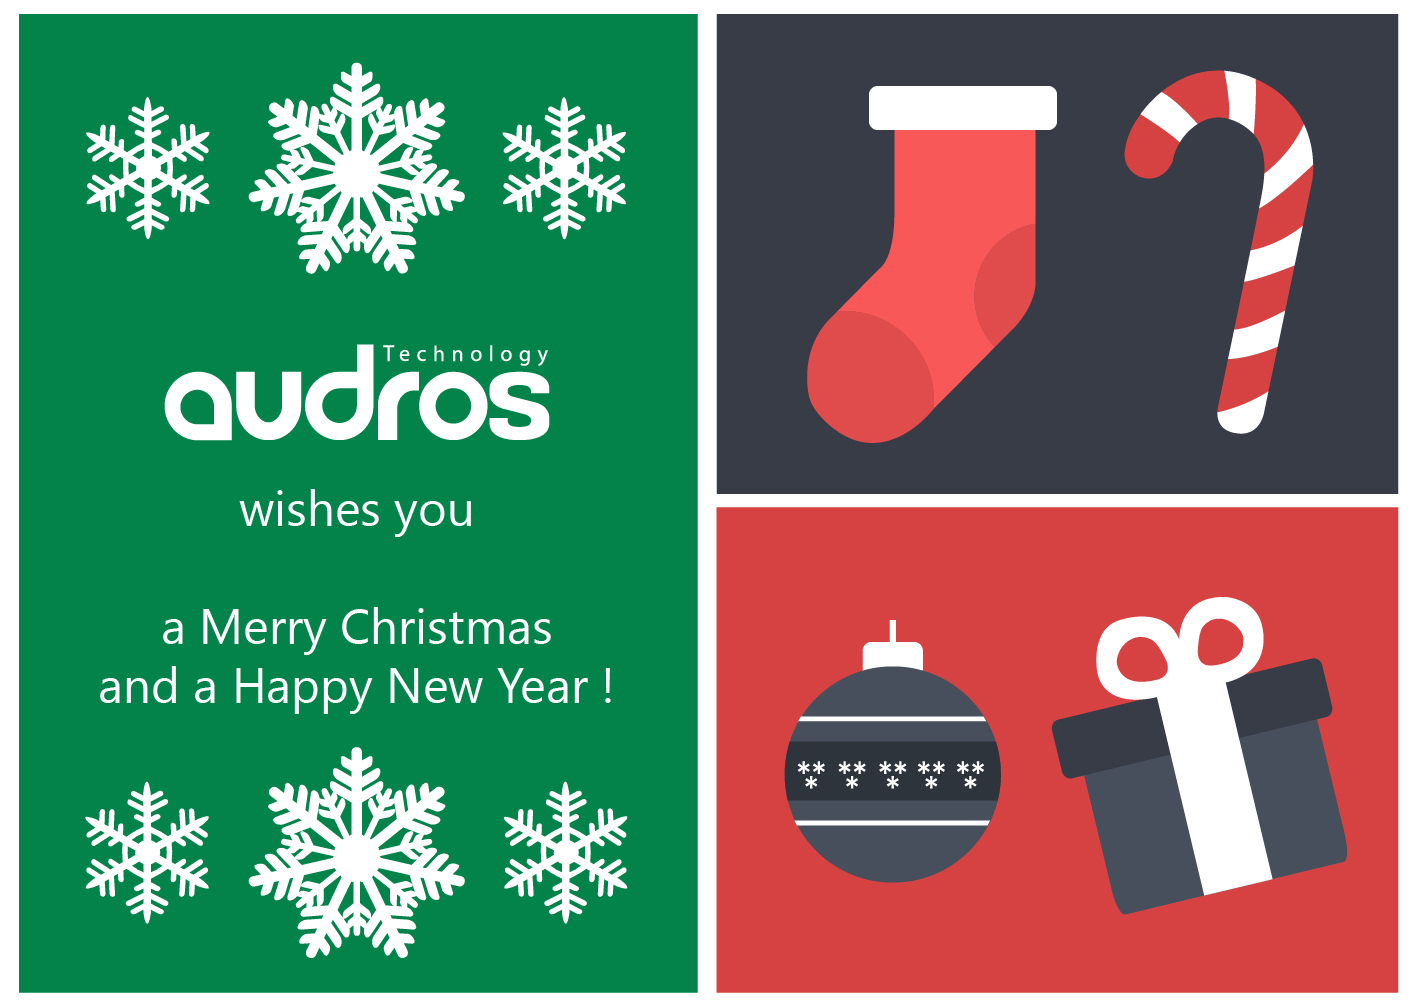 Best wishes 2019 from Audros